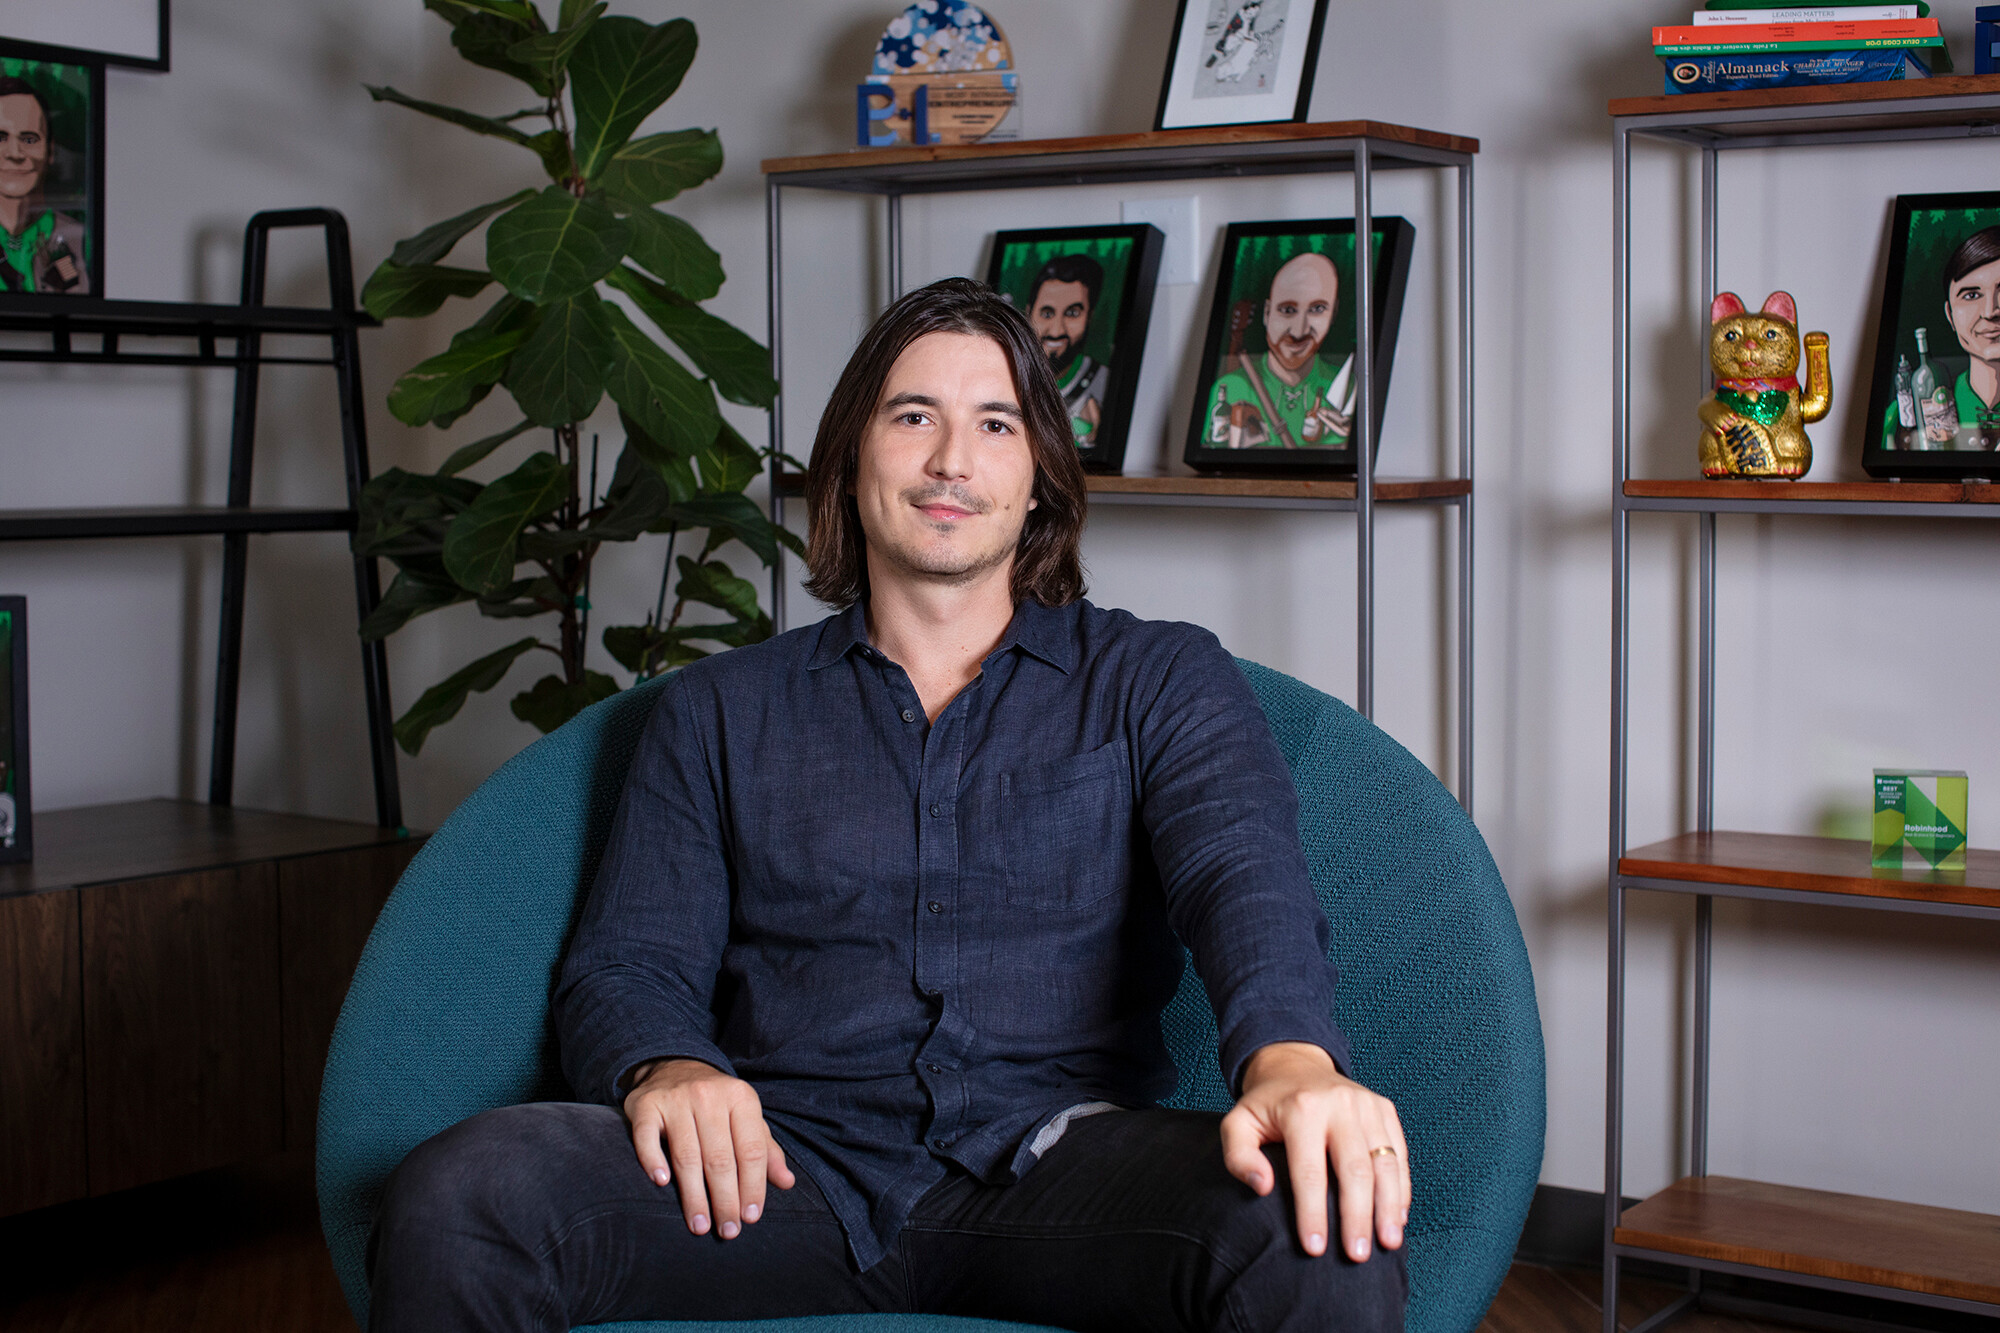 <i>Kimberly White/Getty Images for Robinhood</i><br/>Robinhood's initial public offering priced at $38 a share